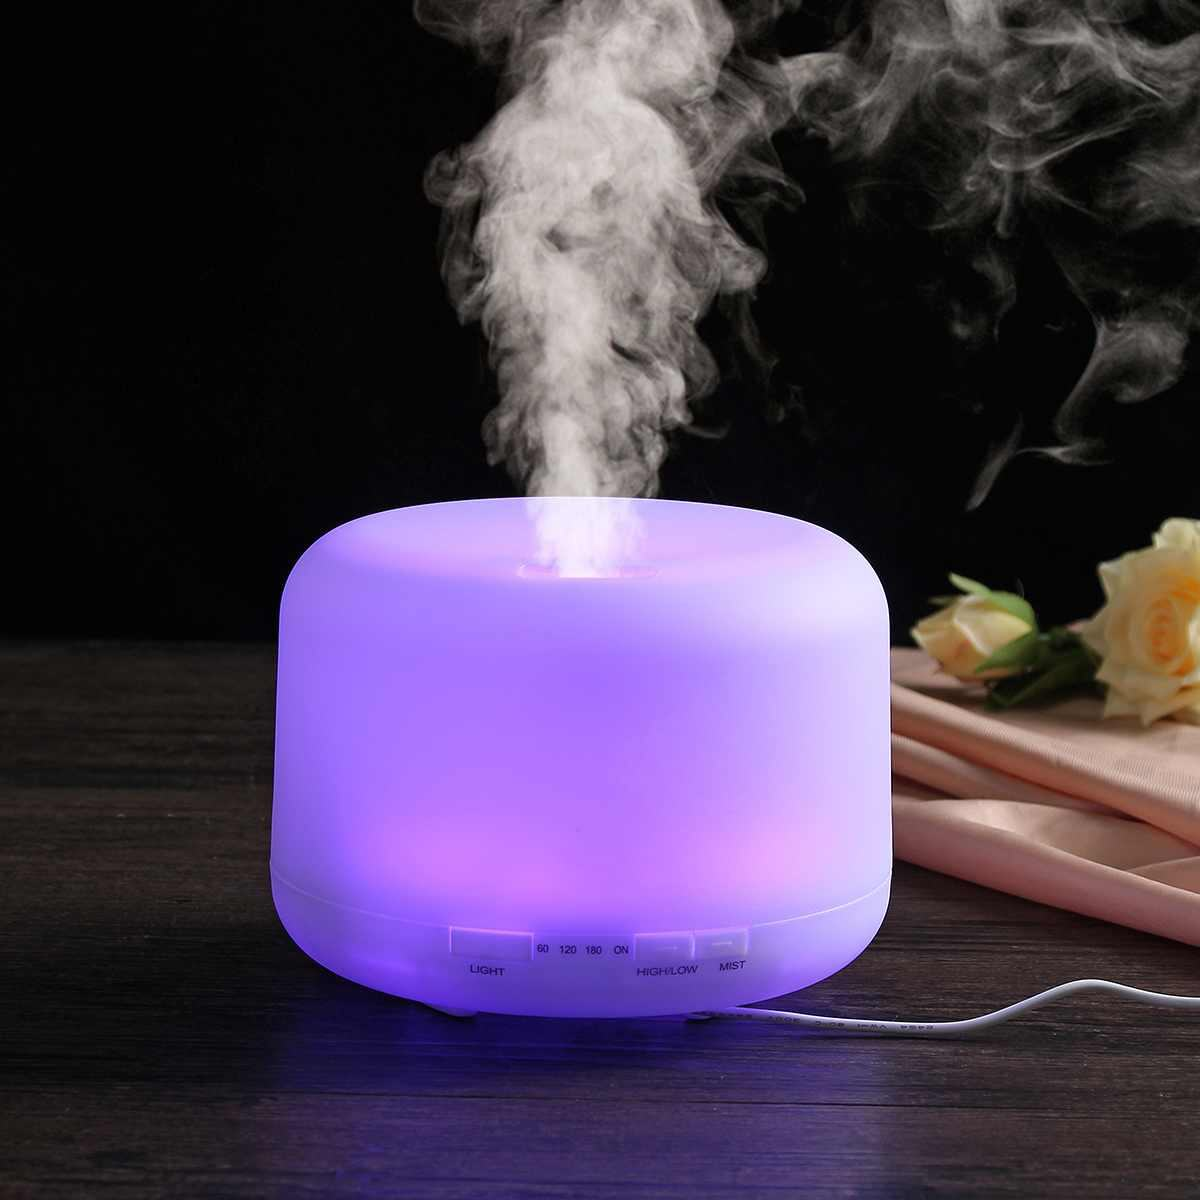 Remote Control Usb Aroma Oil Diffuser Difuser Ultrasonic 500 Large Capacity Essential 500Ml Mlk-818 Household Waterless